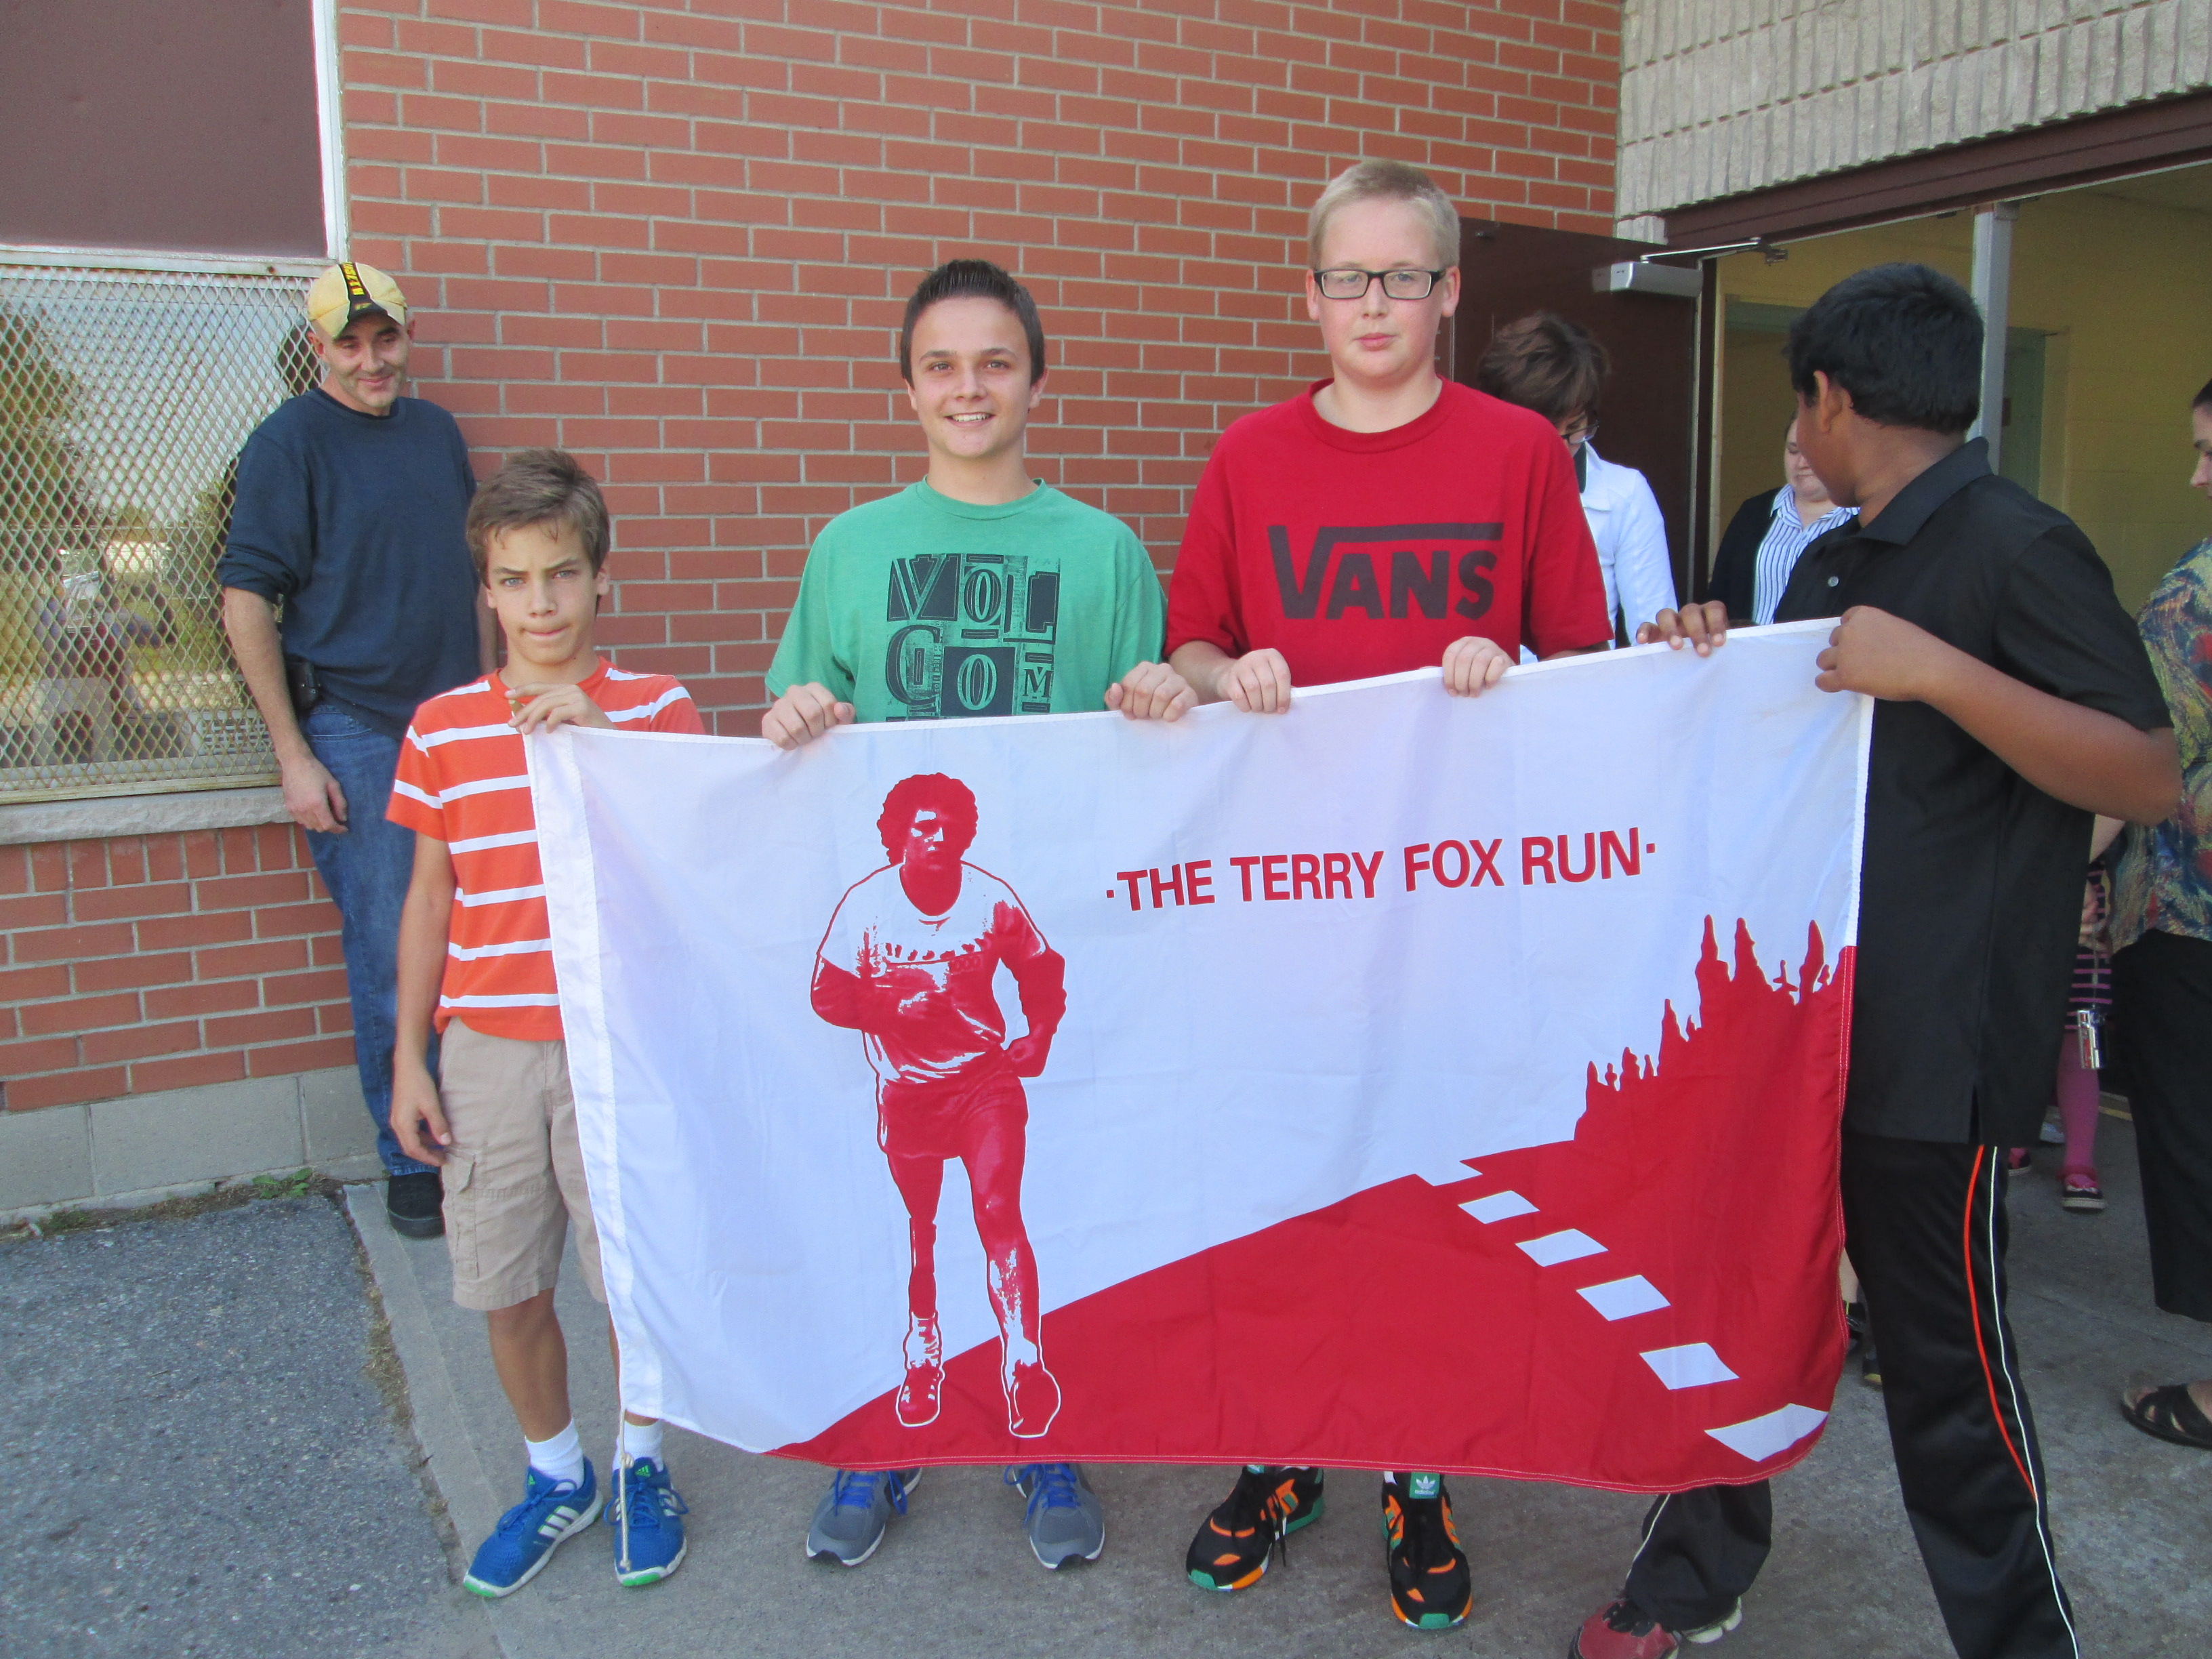 Students holding Terry Fox Run Banner